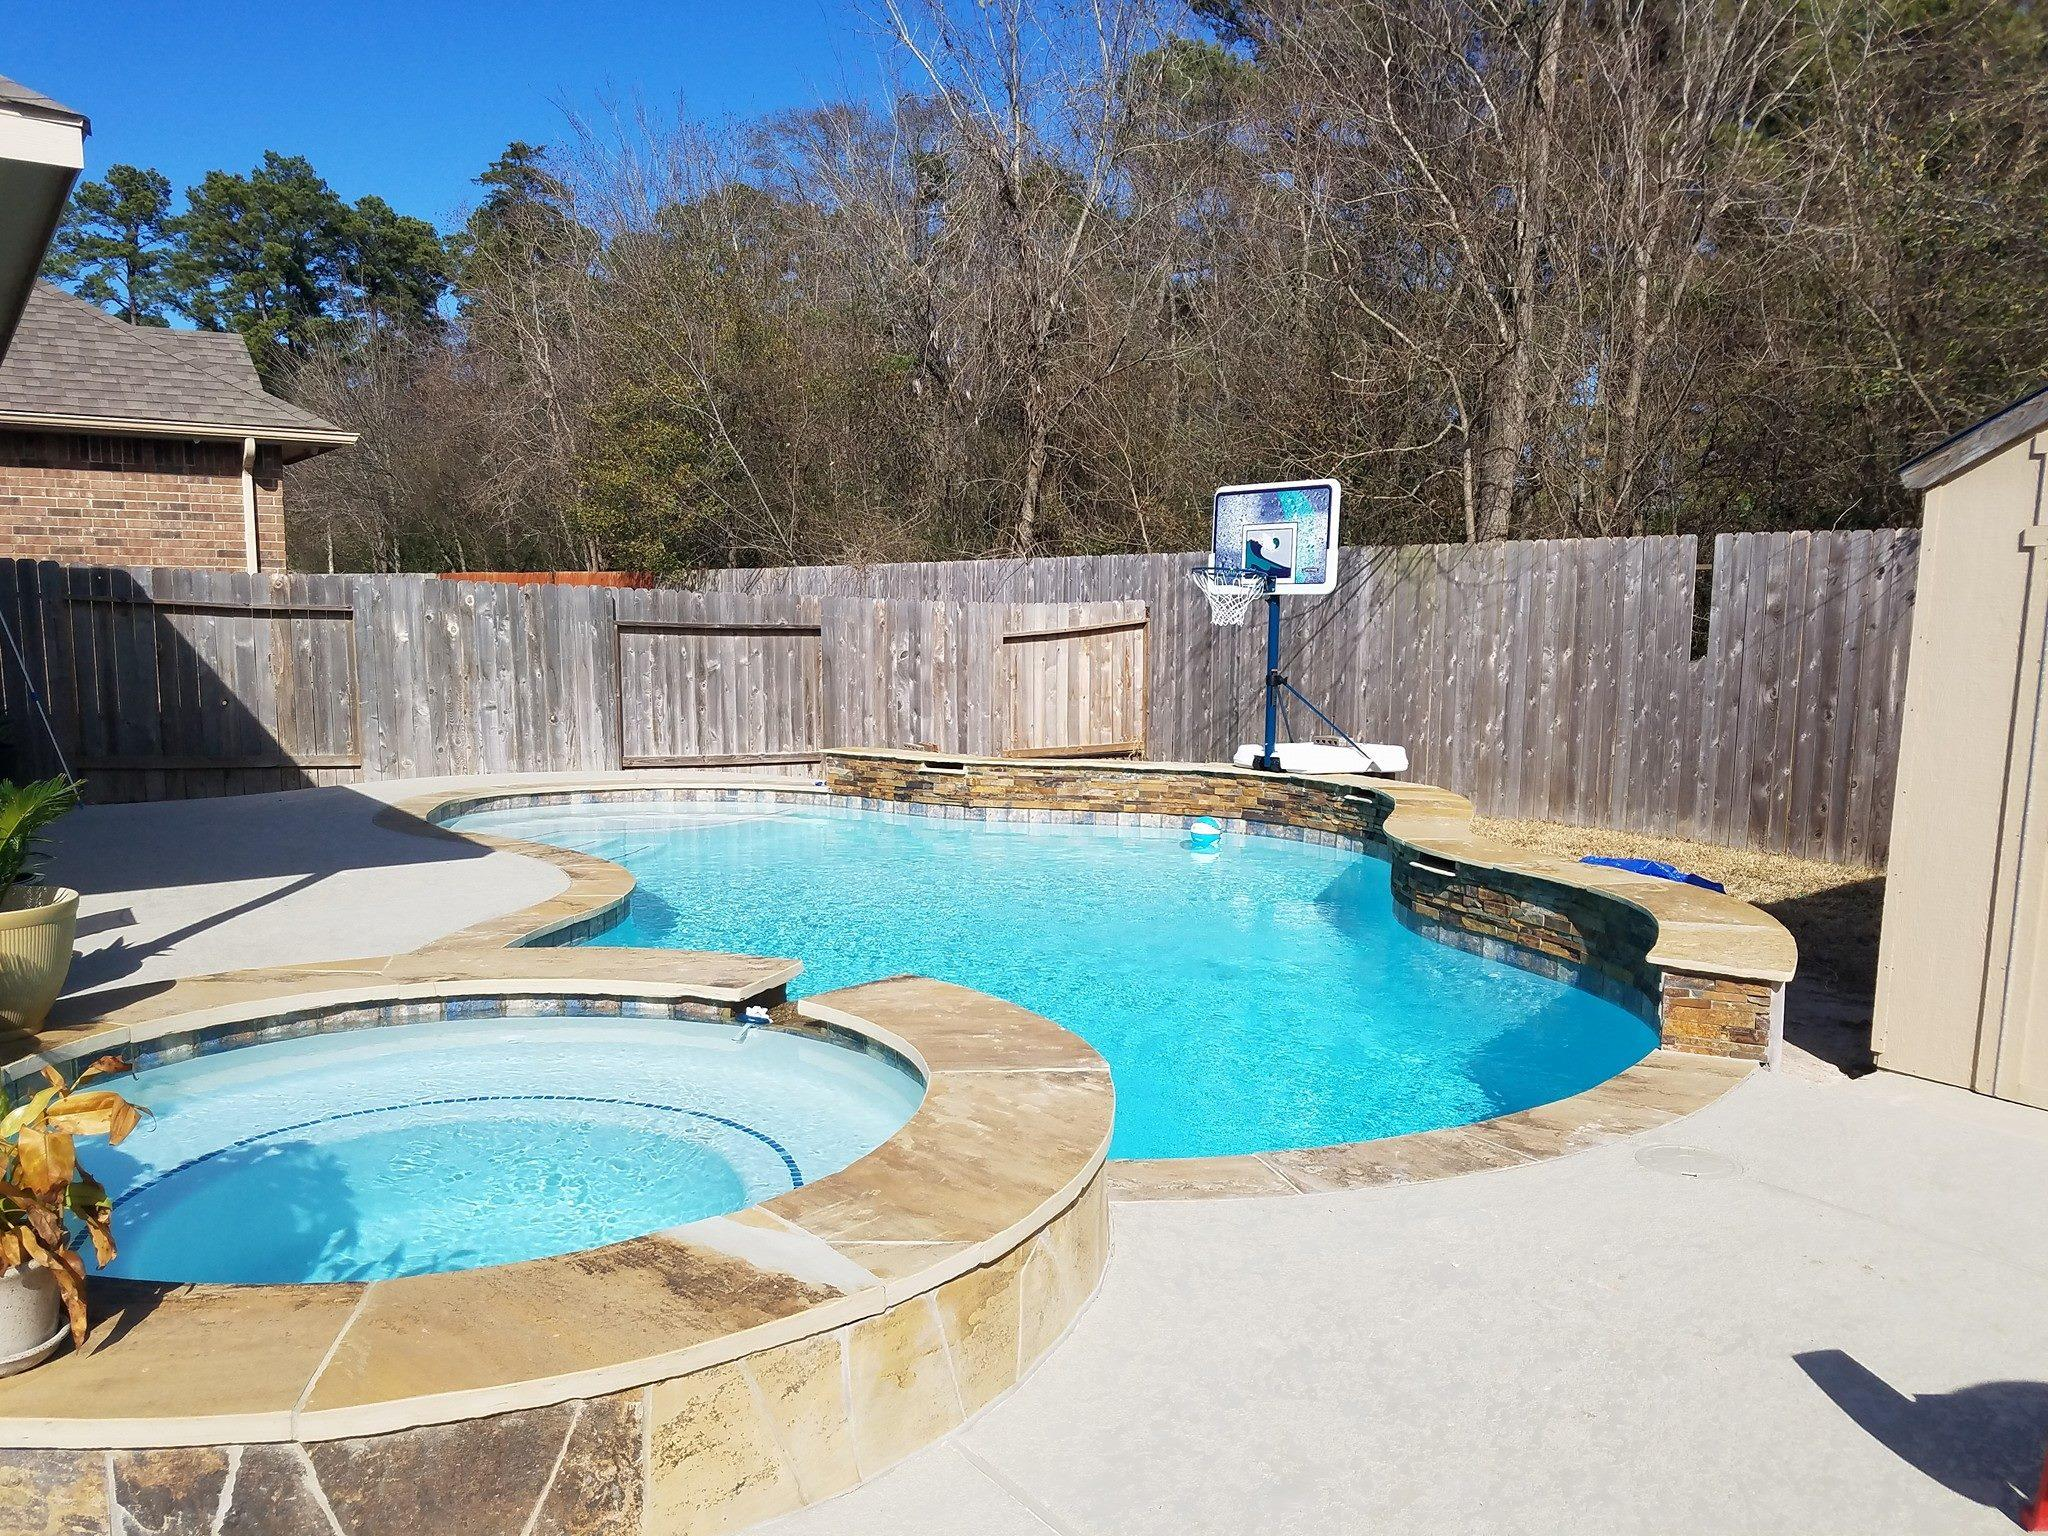 Precision Pools & Spas image 76